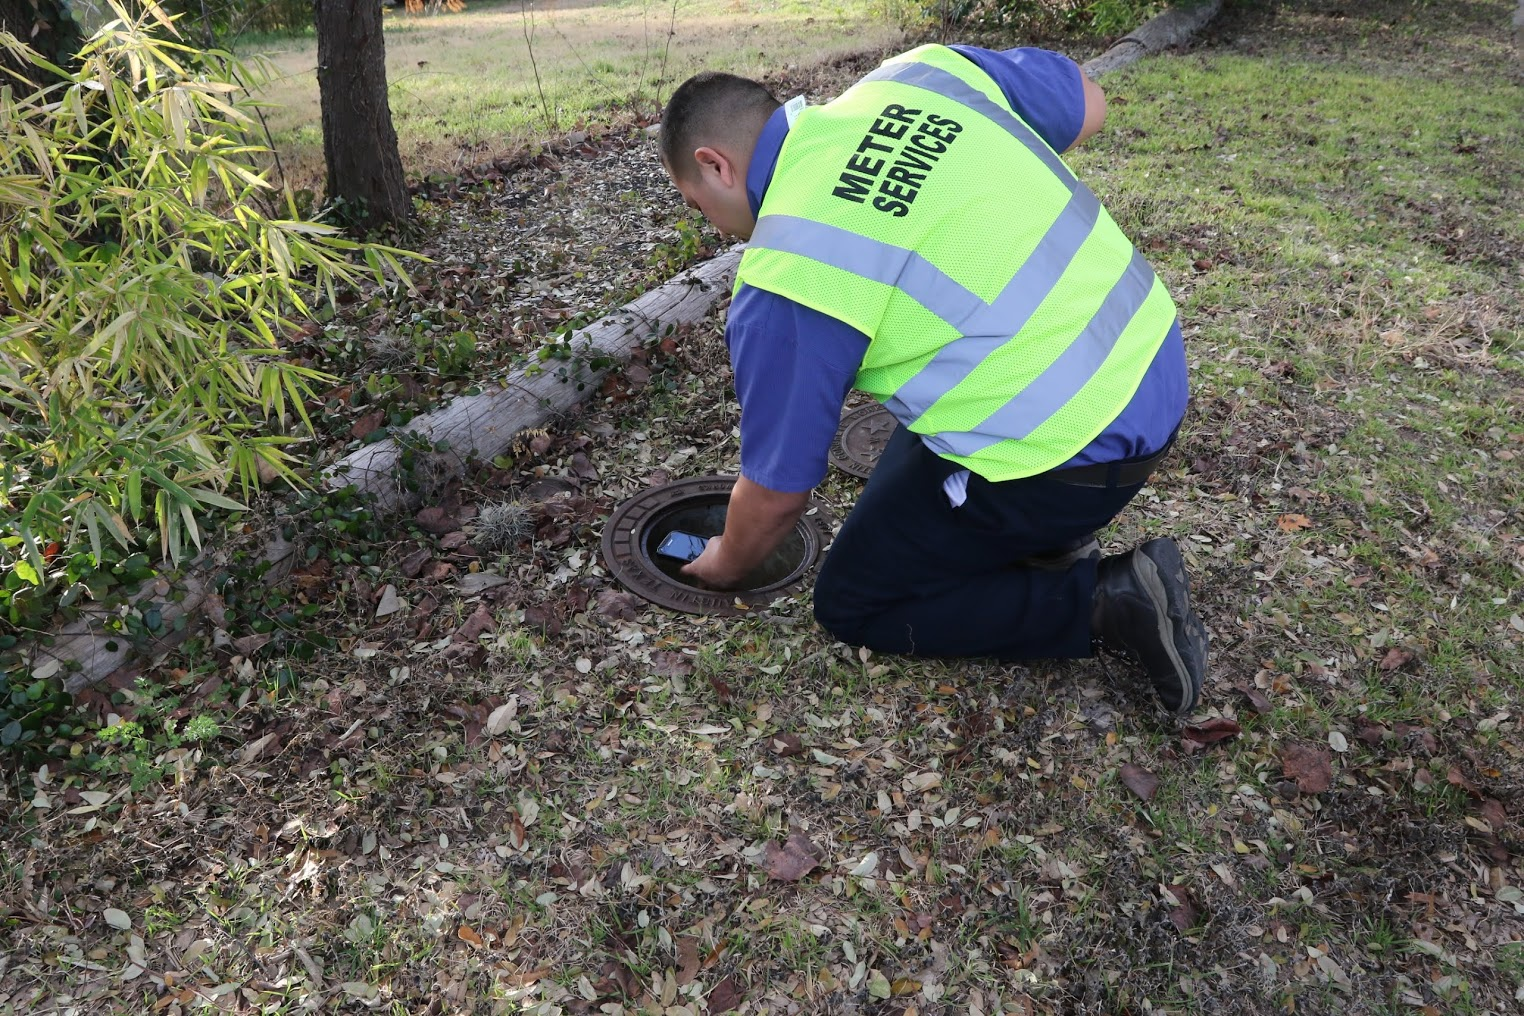 A meter reader taking a photograph of the water meter. (Courtesy: City of Austin)